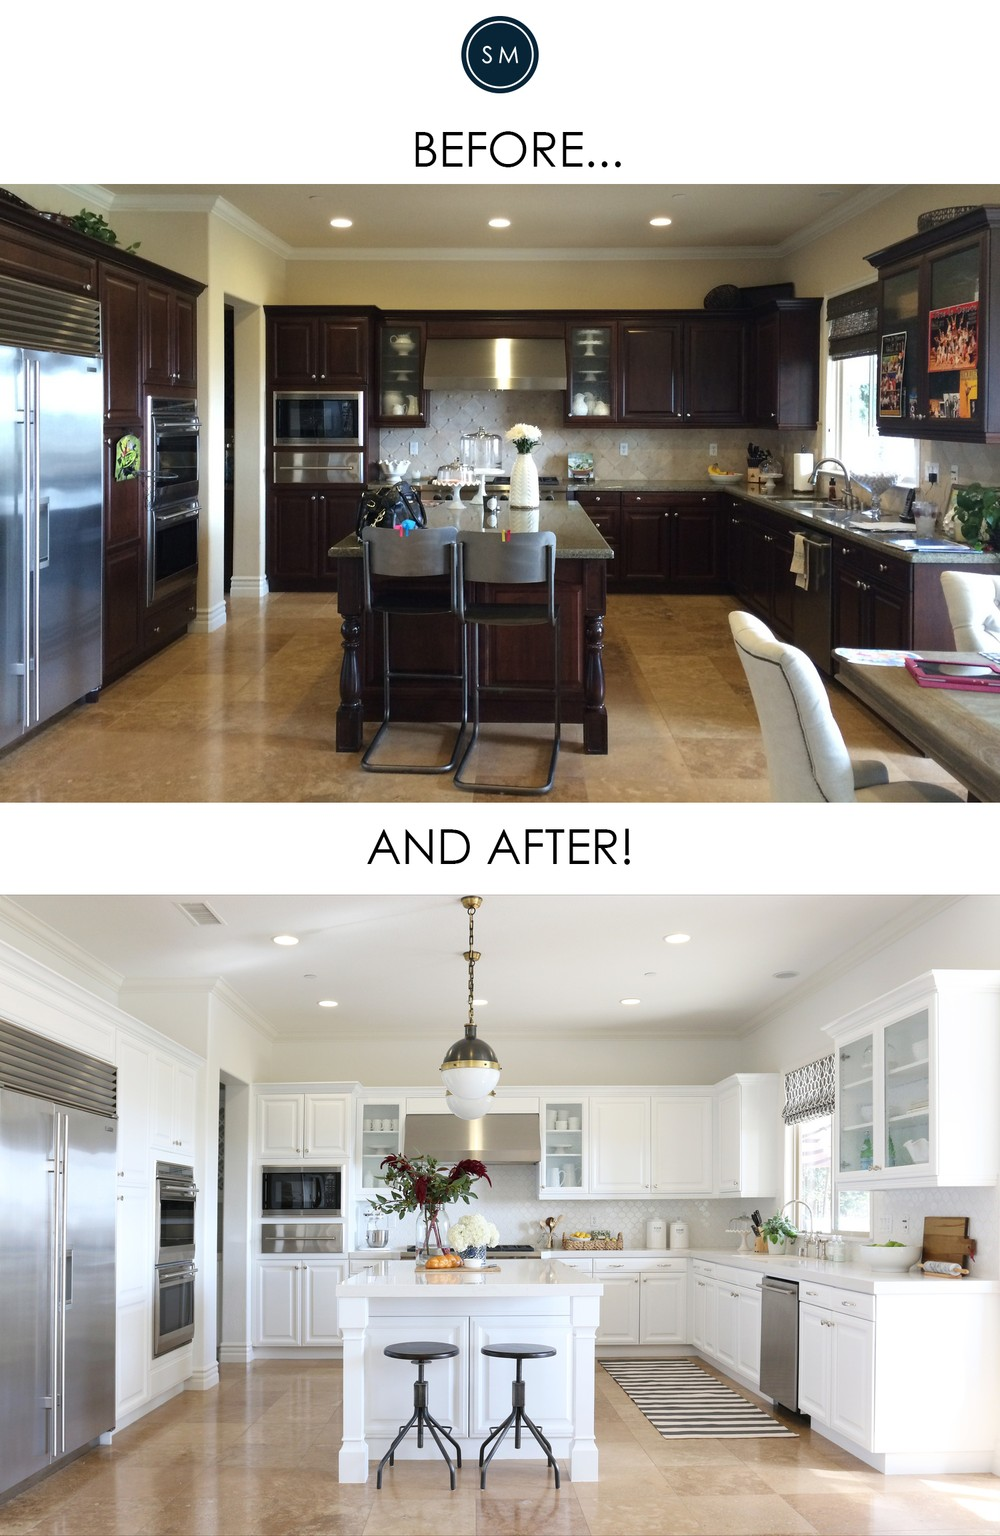 Kitchen+Remodel+Before+and+After+__+Studio+McGee.jpg